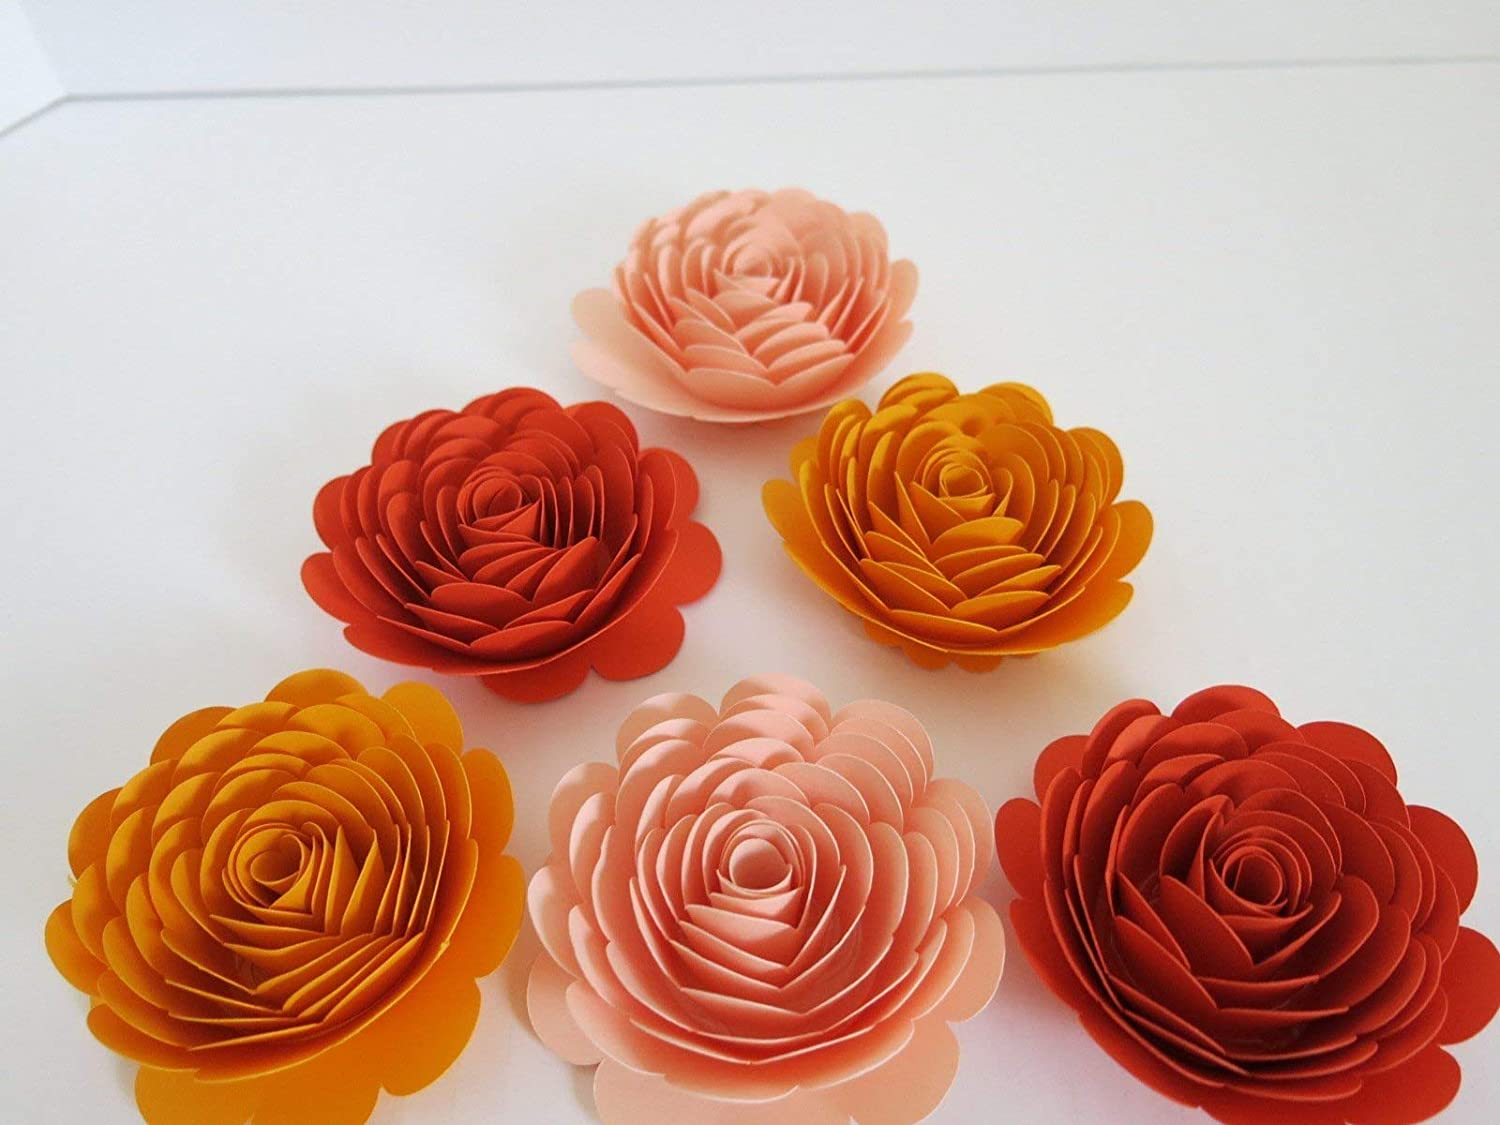 Fall Wedding Decorations Shades of Orange Paper Flowers Ombre Autumn Floral Decor Bridal Shower Decor 3 Inch Roses Set of 6